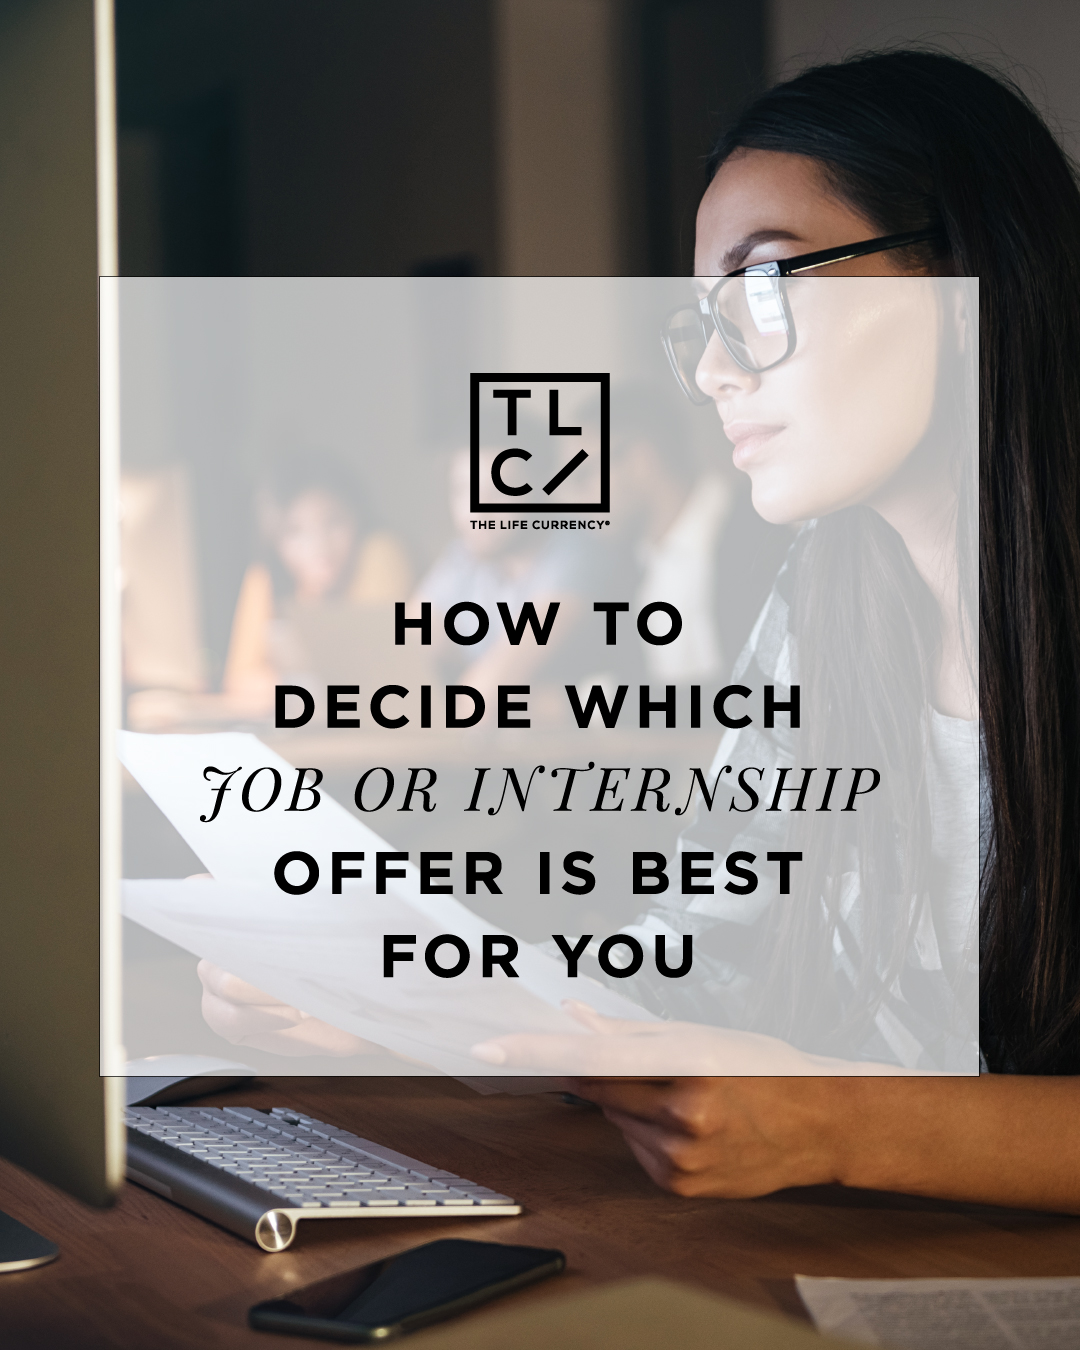 How to Decide Which Job or Internship Offer Is Best for You